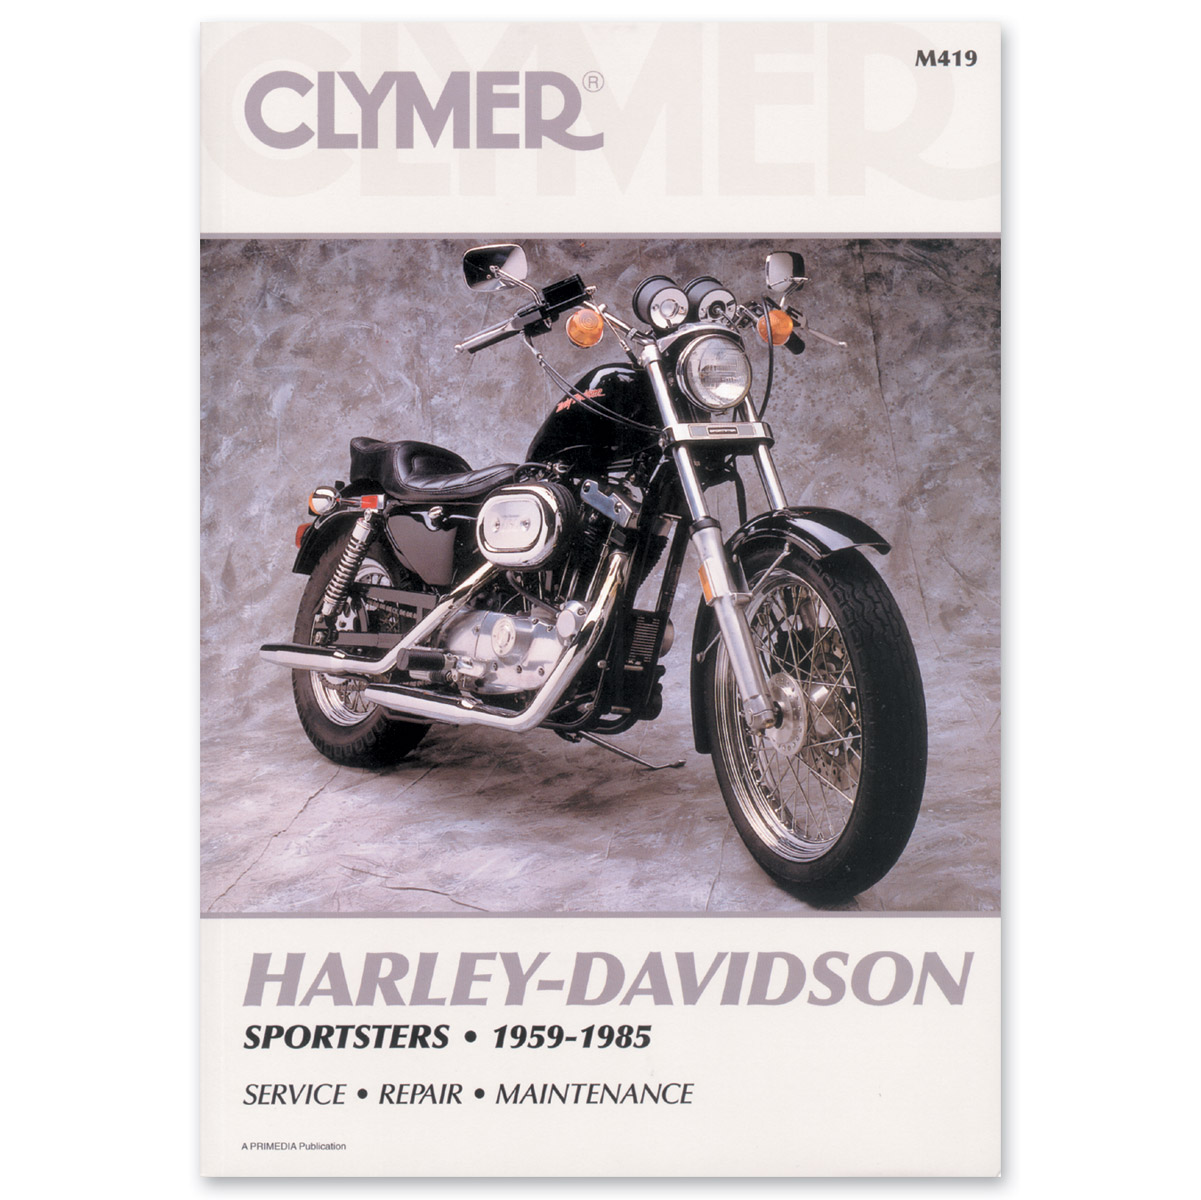 Clymer 1959-85 Sportster Repair Manual